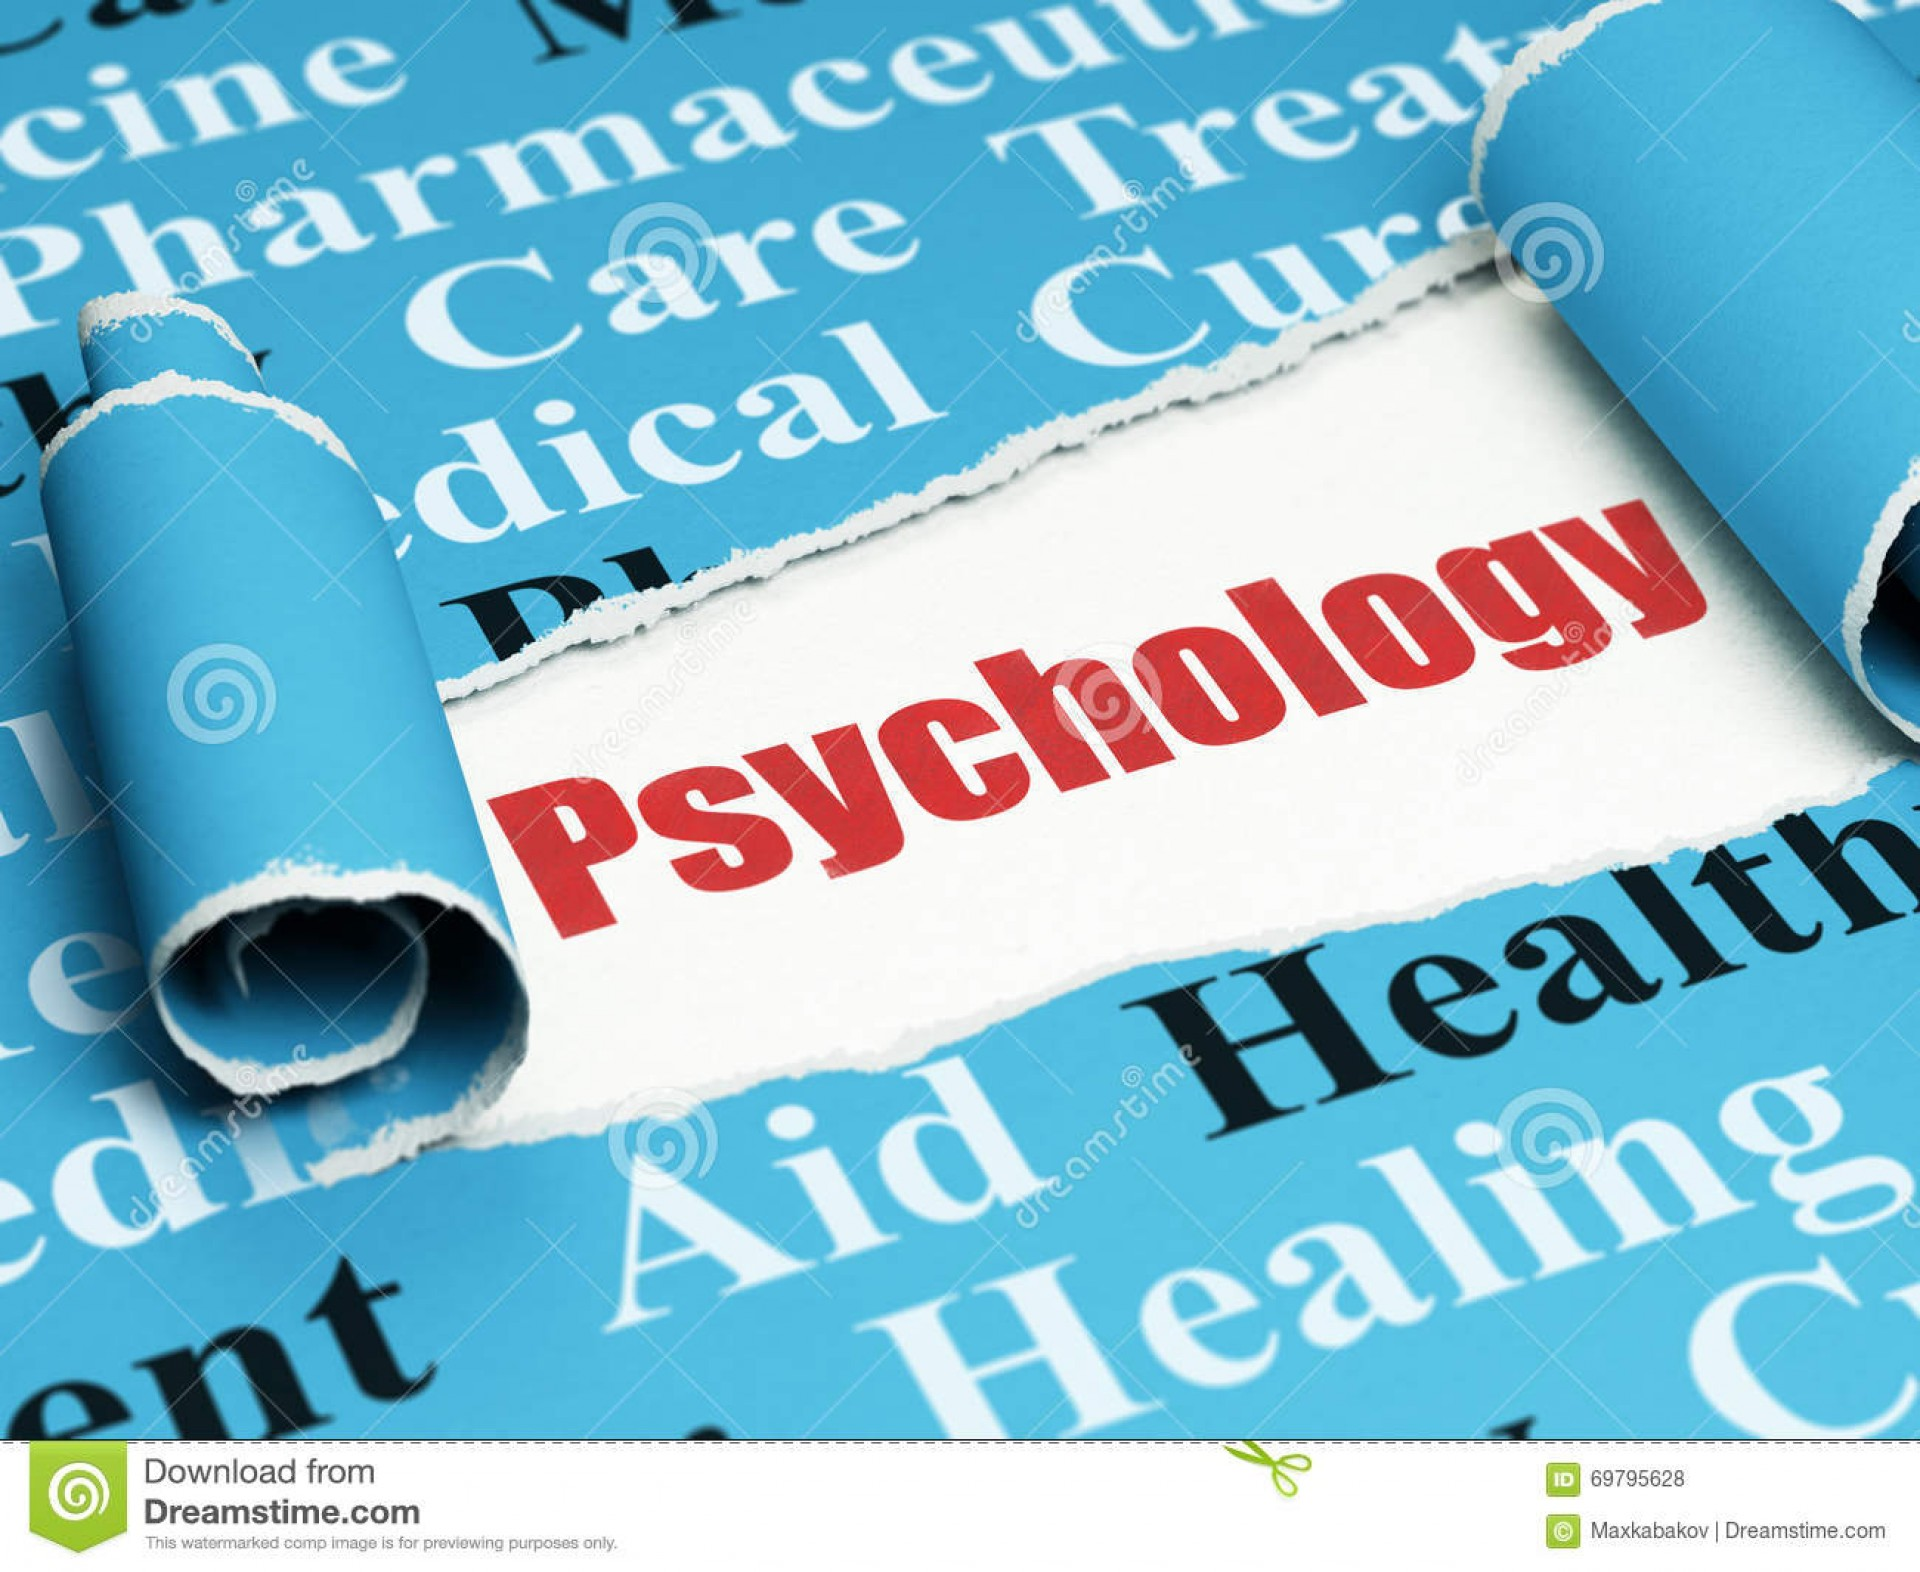 010 Research Paper Psychology On Dreams Health Concept Red Text Under Piece Torn Curled Blue Tag Cloud Rendering Singular 1920